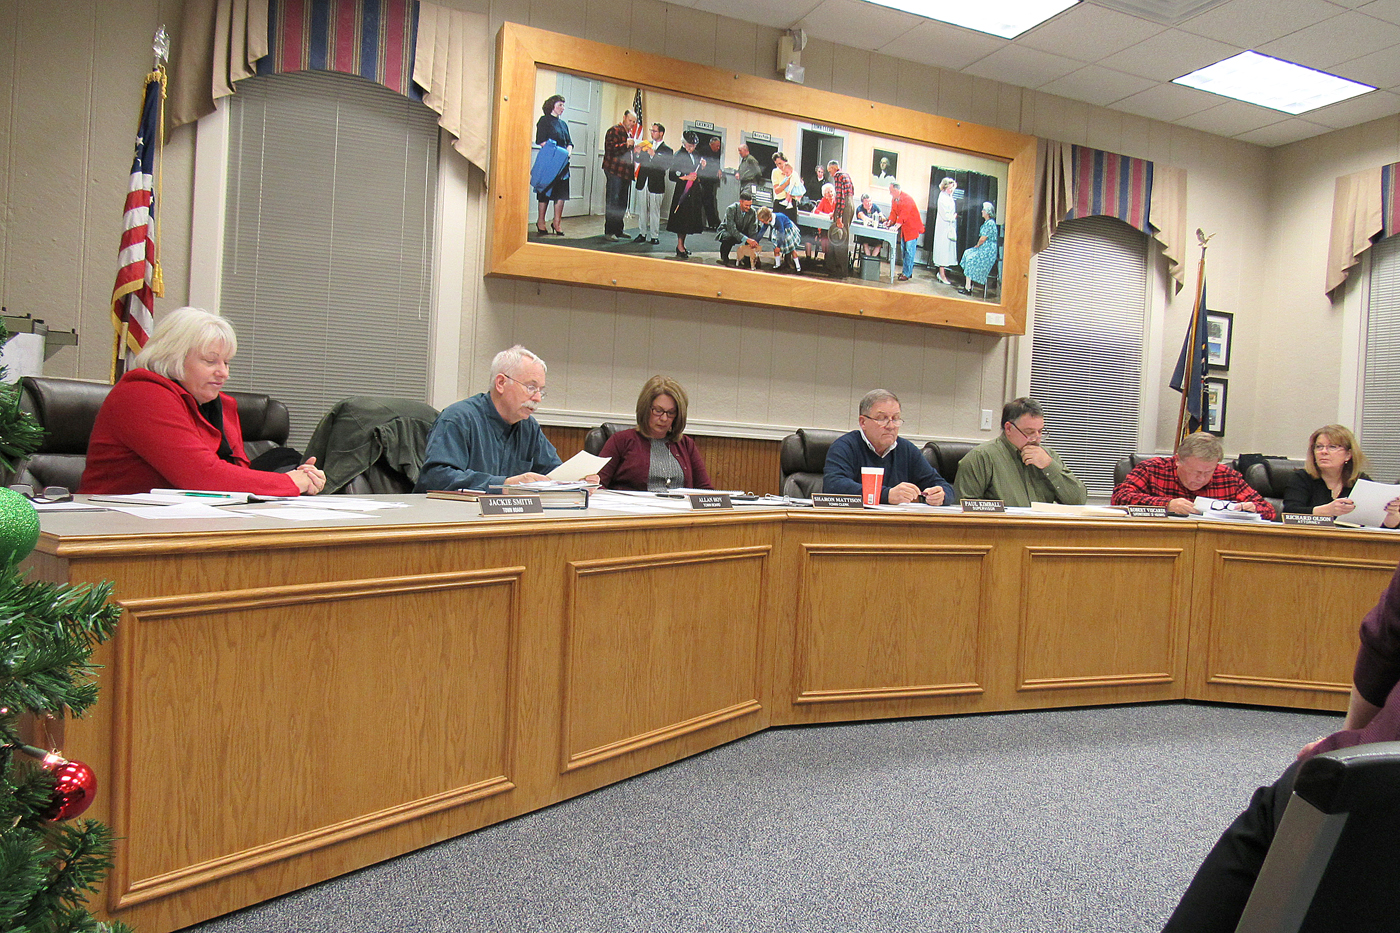 Clarkson Town Council member Allan Hoy reads a resolution December 12 honoring Supervisor Paul Kimball, who is leaving office at the end of the year after serving the town for 36 years. K. Gabalski photo